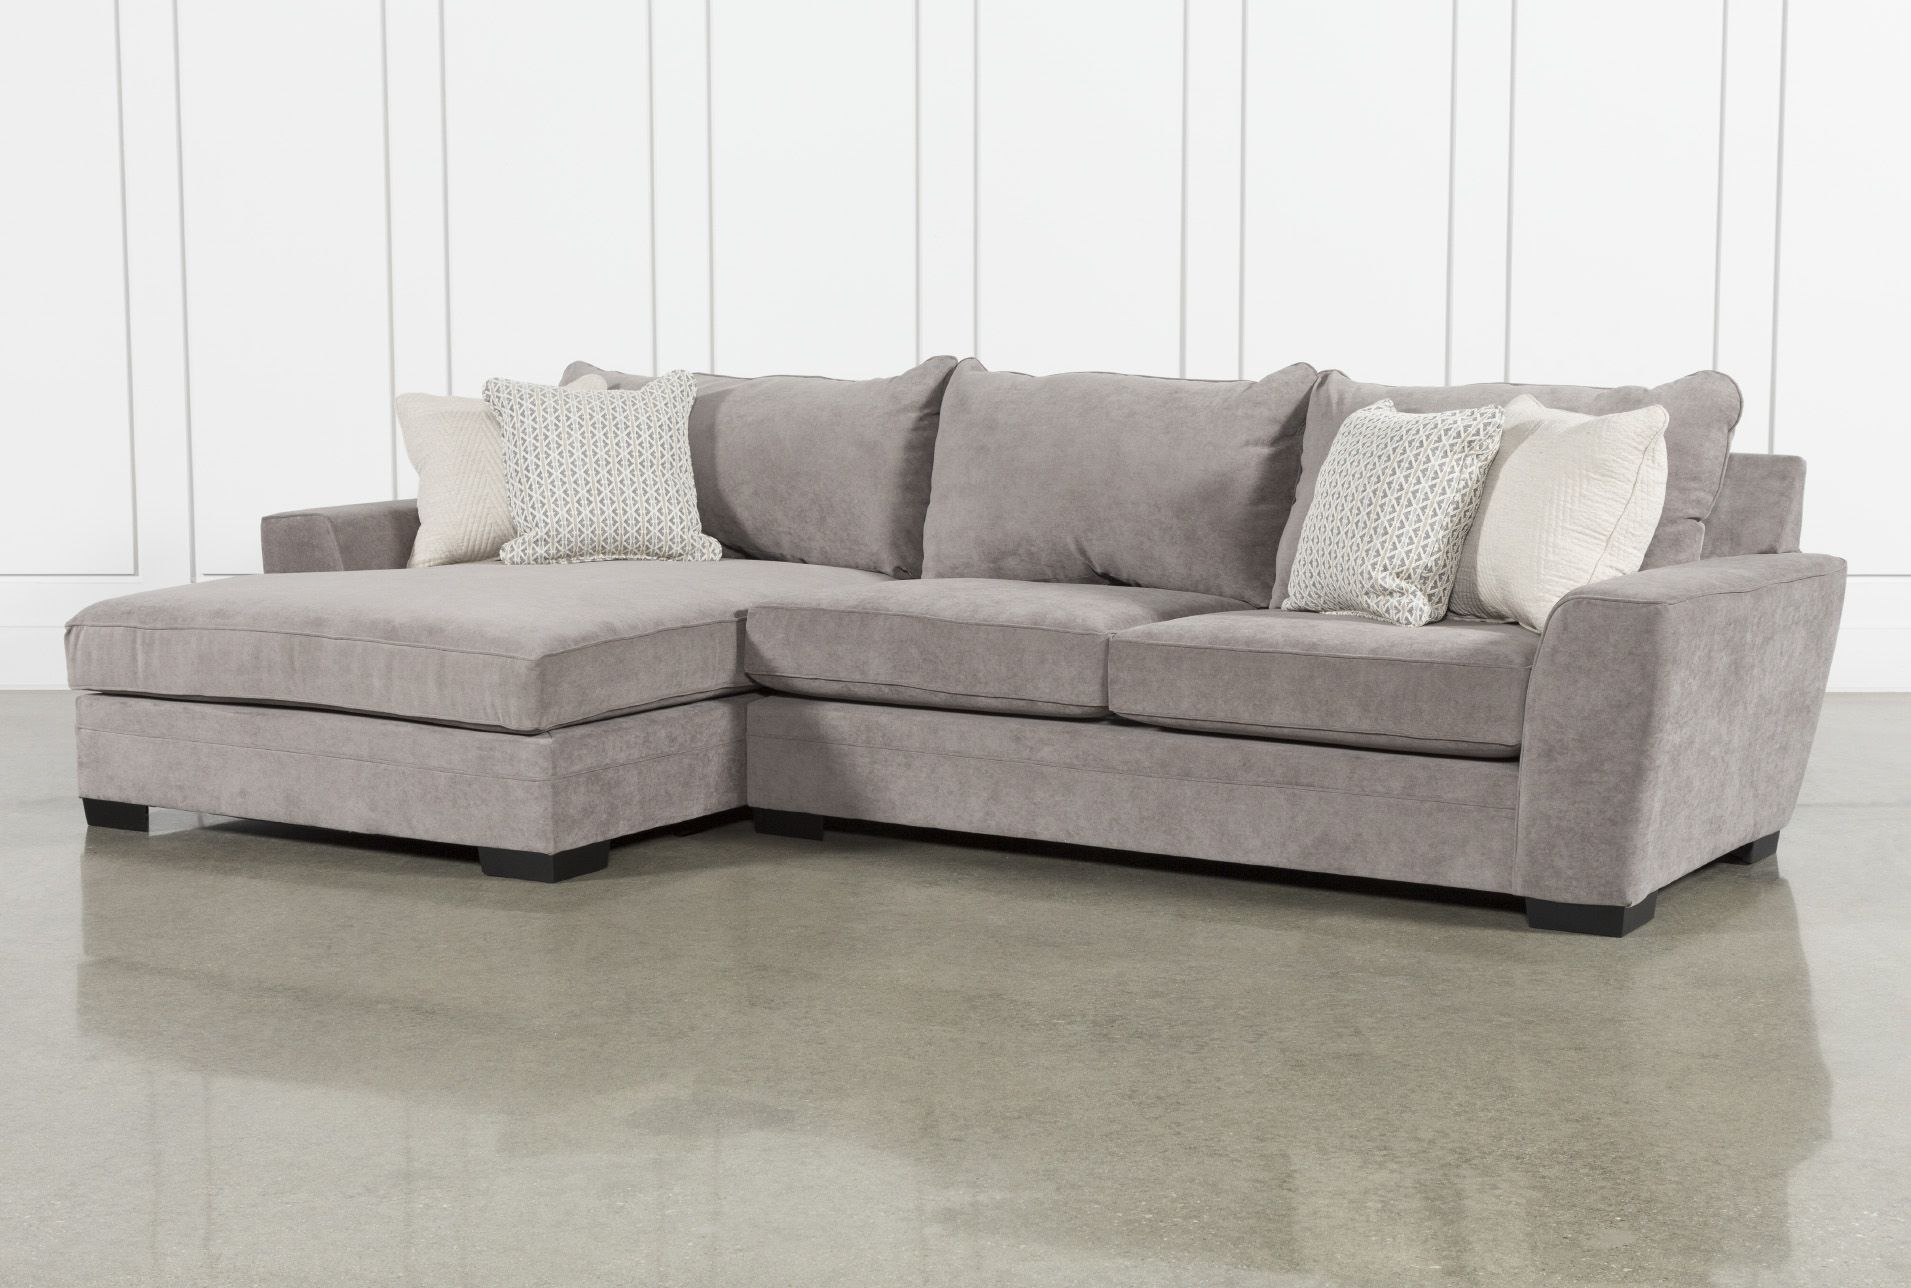 """Delano Charcoal 2 Piece 136"""" Sectional With Left Arm Inside Delano 2 Piece Sectionals With Laf Oversized Chaise (View 4 of 15)"""